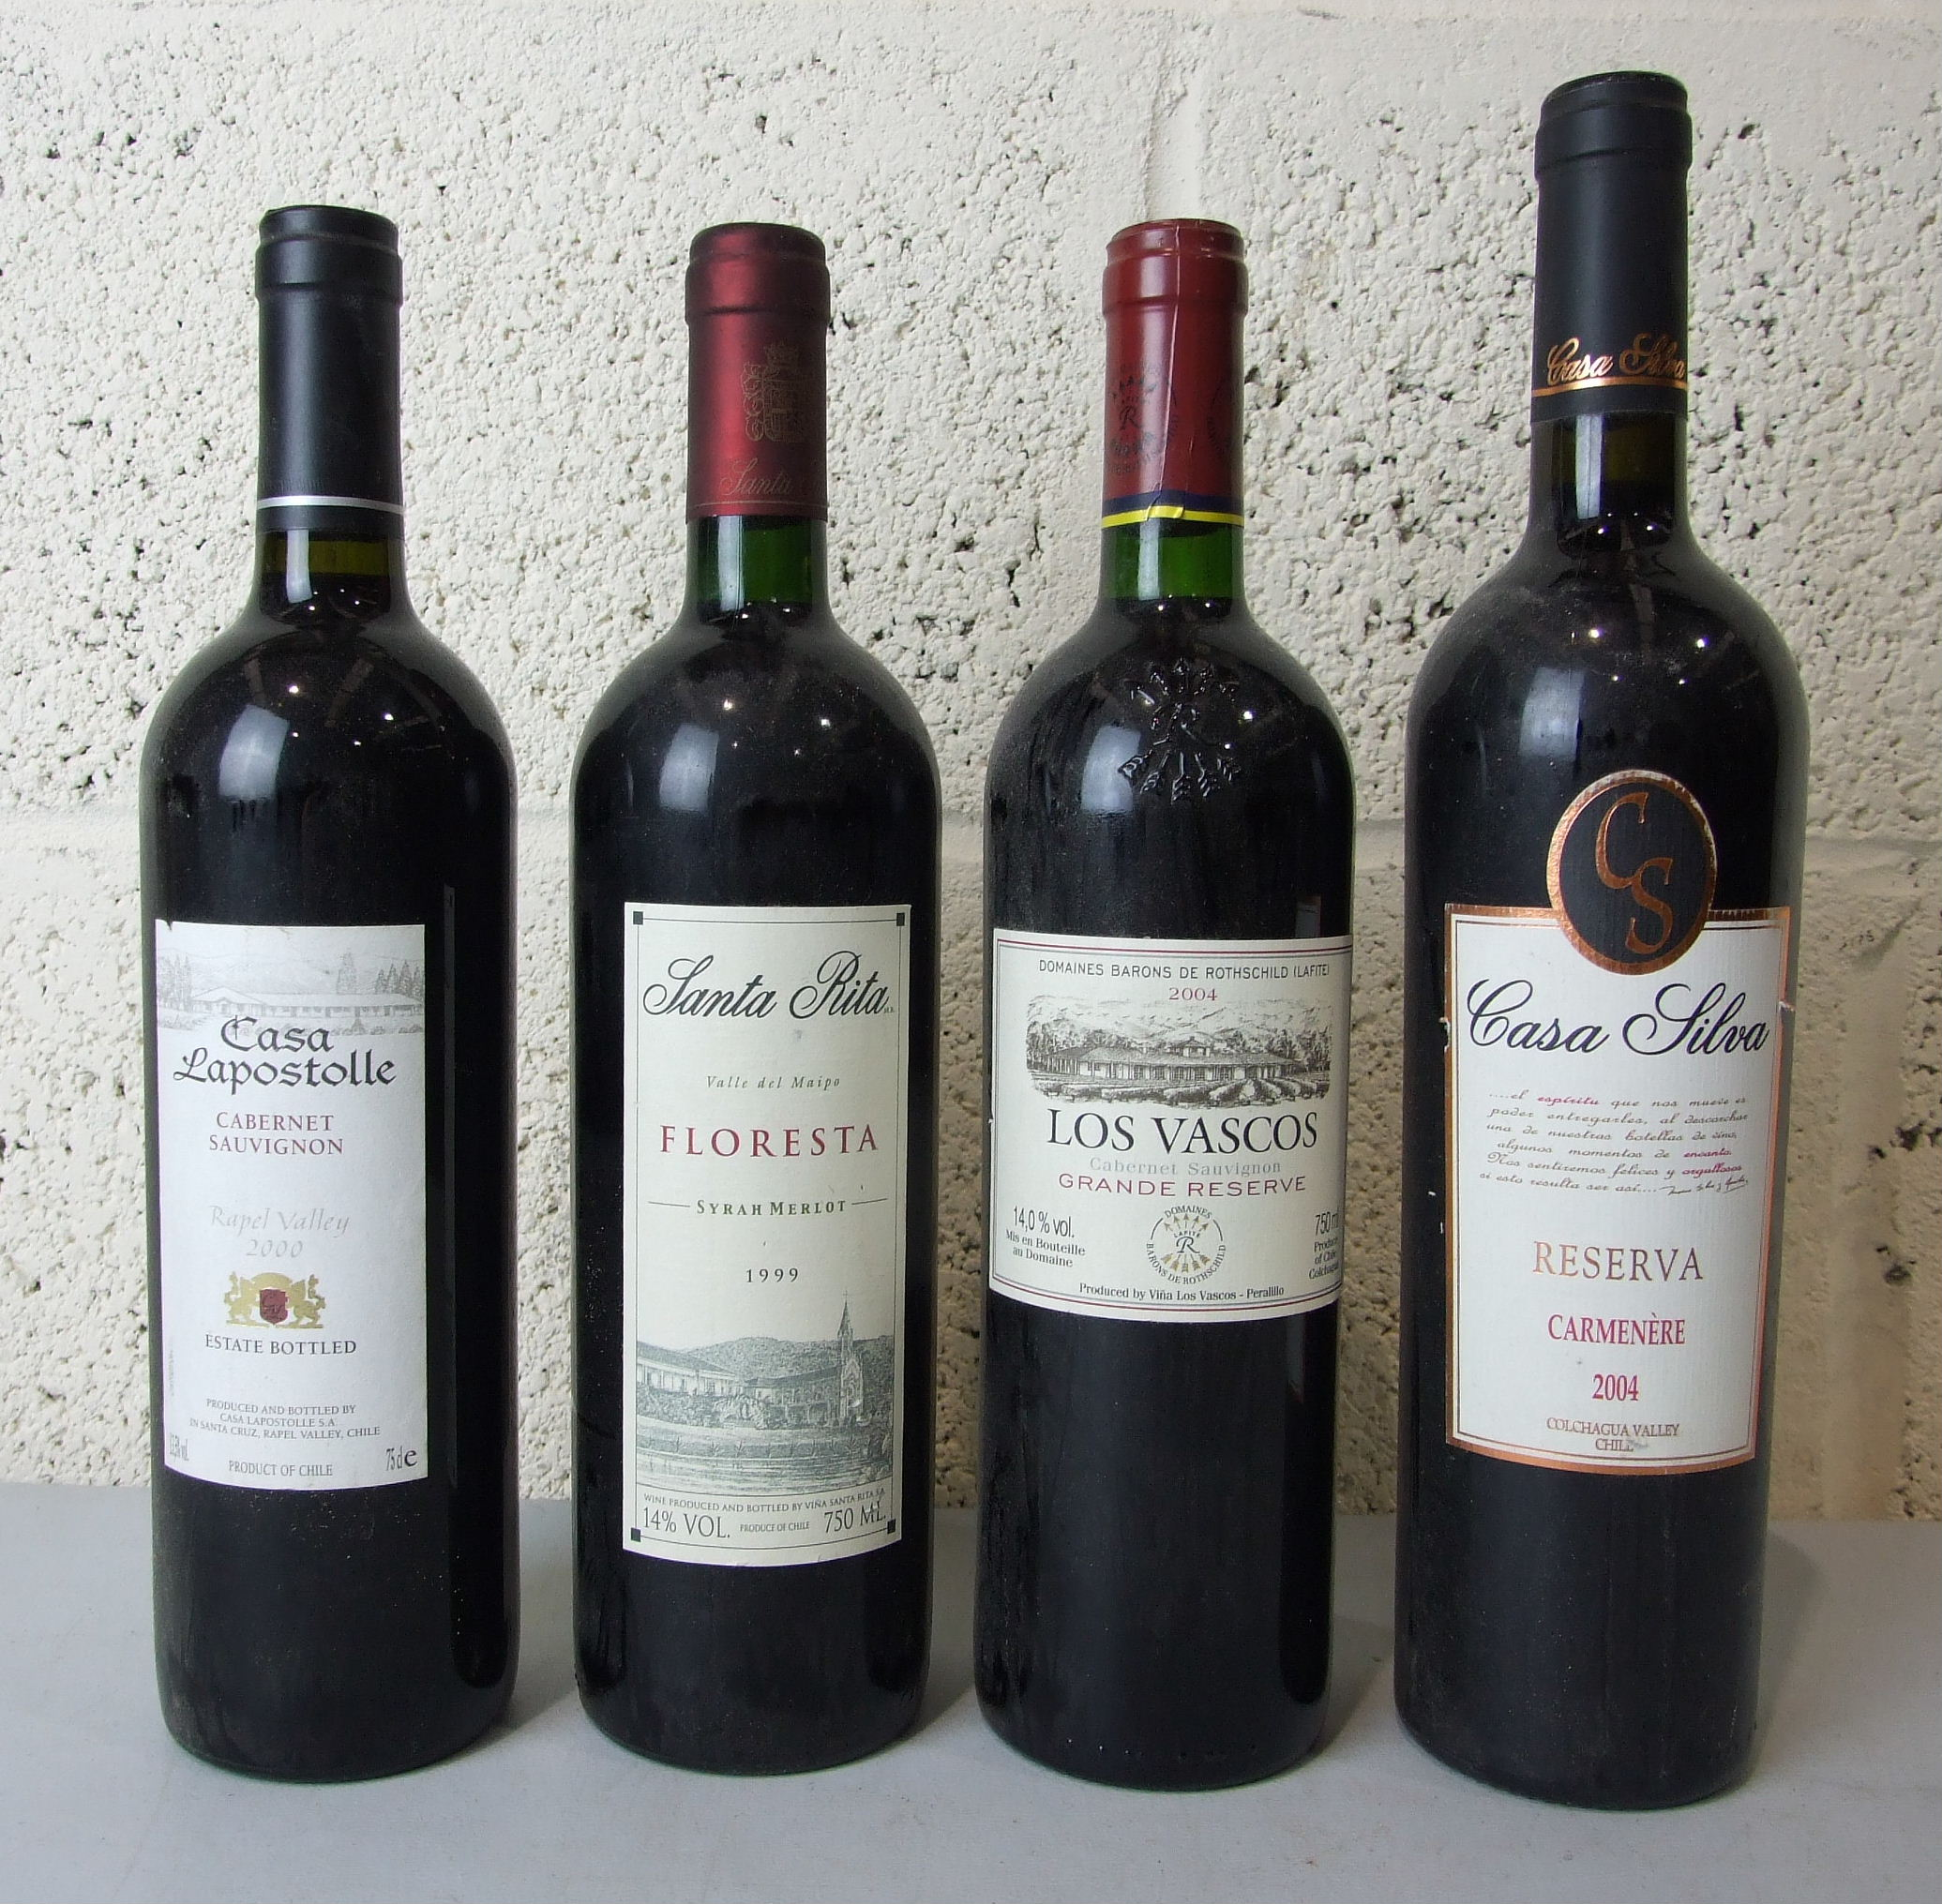 Lot 36 - Chile, Los Vascos Grande Reserve, (Baron de Rothschild), 2004, one bottle and three others, (4).